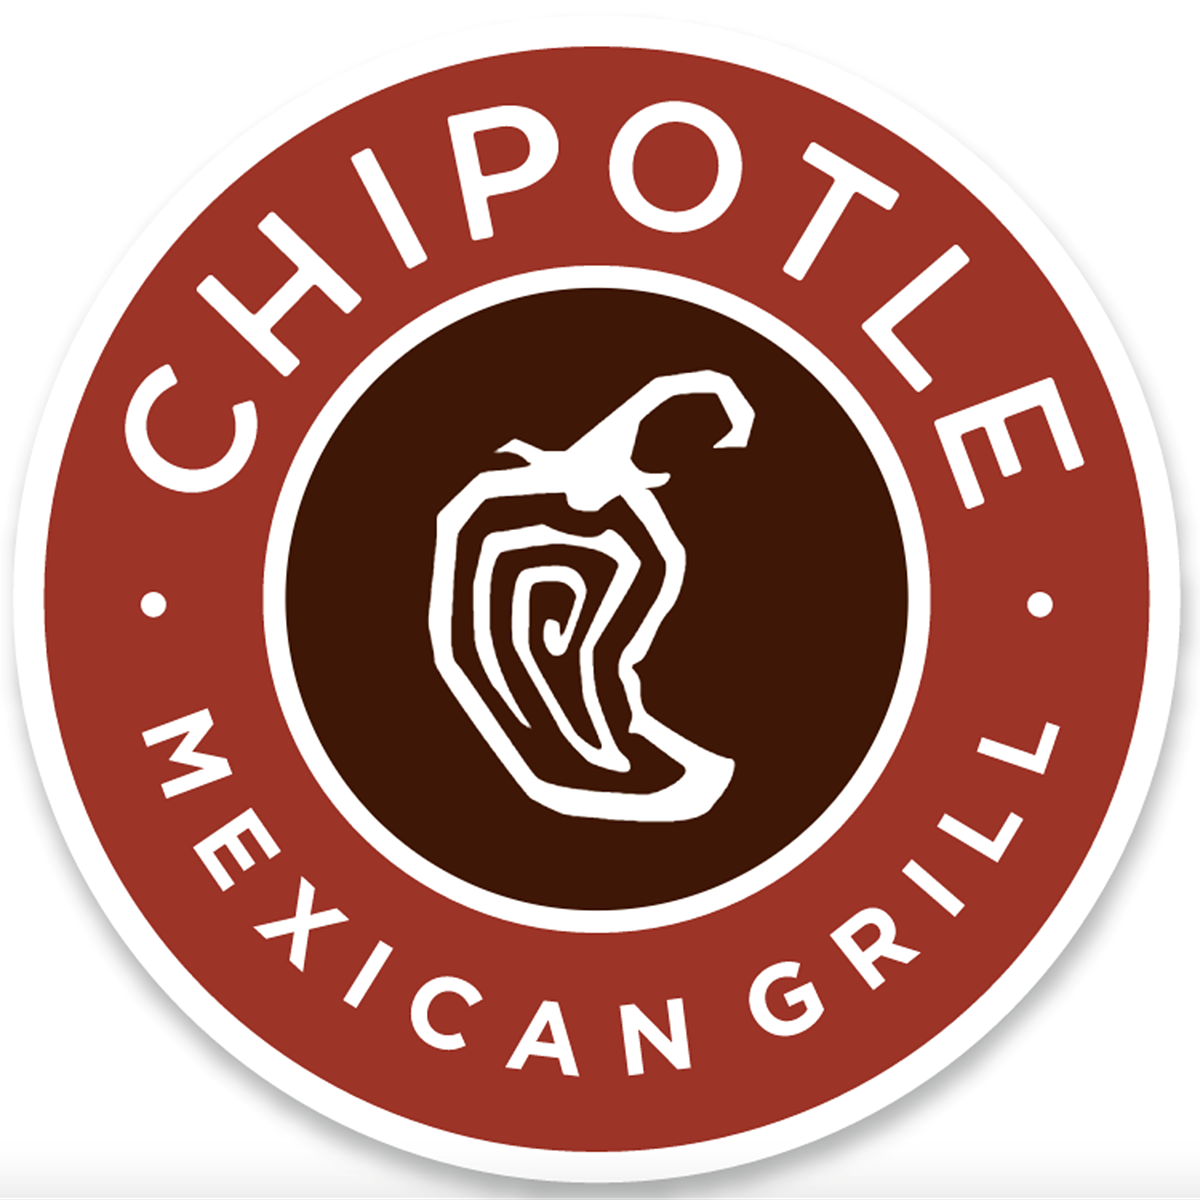 Chipotle sued for $2 2b for allegedly using woman's photo without